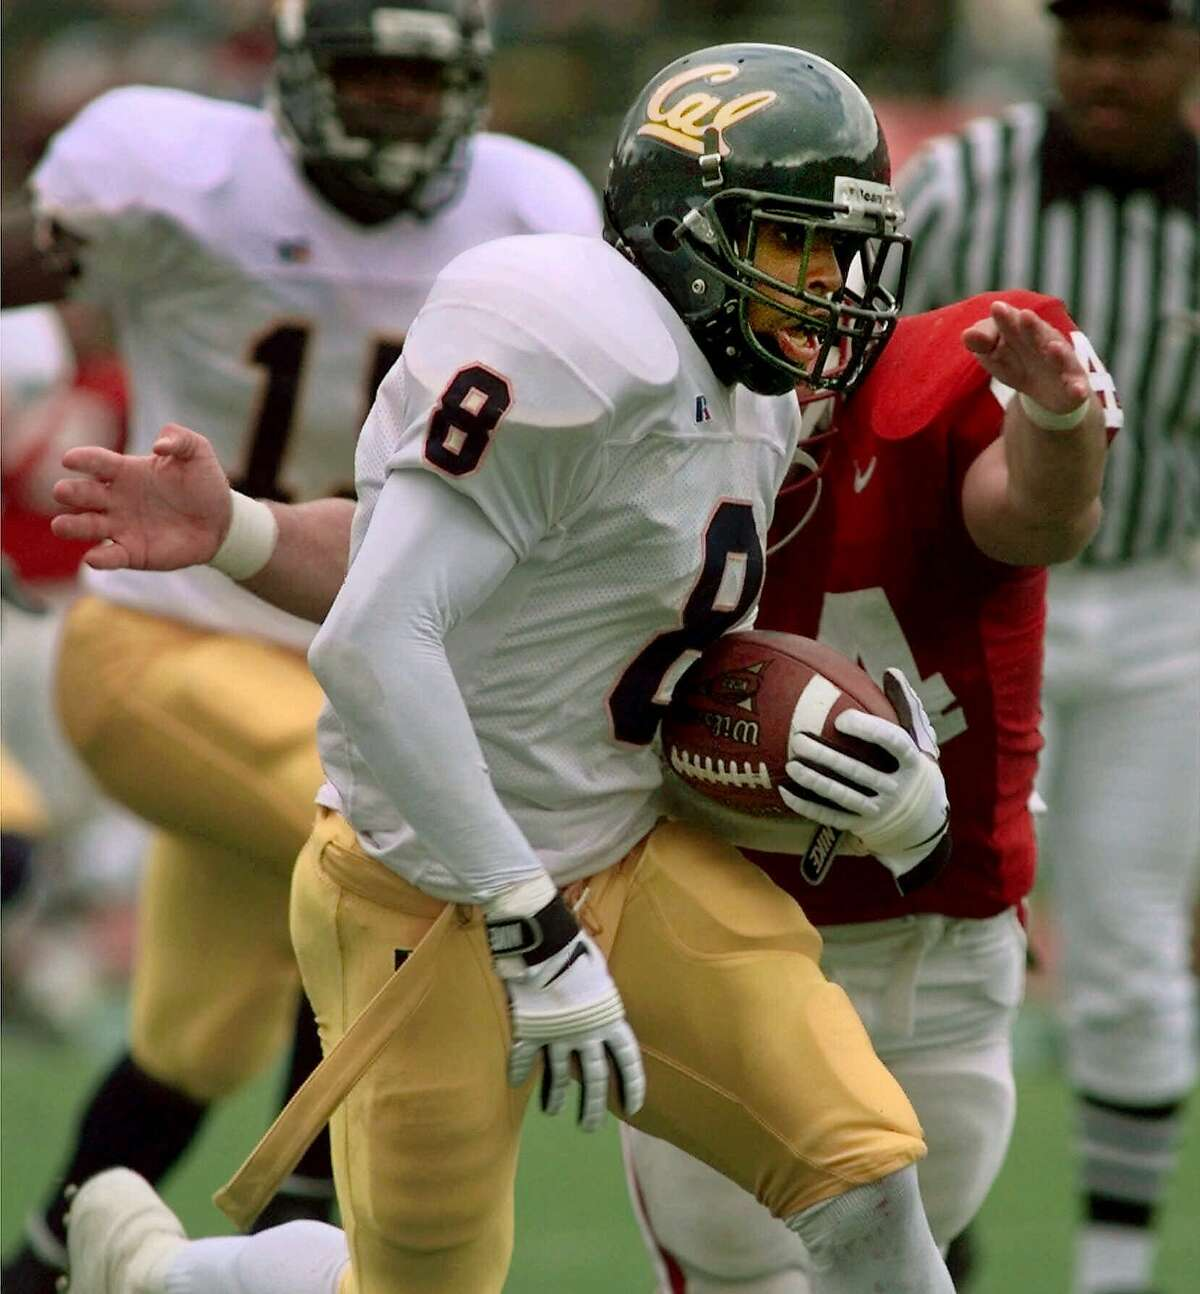 FOR USE WITH NFL DRAFT STORIES--California's Deltha O'Neal avoids a Stanford defender during a 58-yard punt return for a touchdown in the second quarter in this Nov. 20, 1999 photo, in Stanford, Calif. (AP Photo/Paul Sakuma)